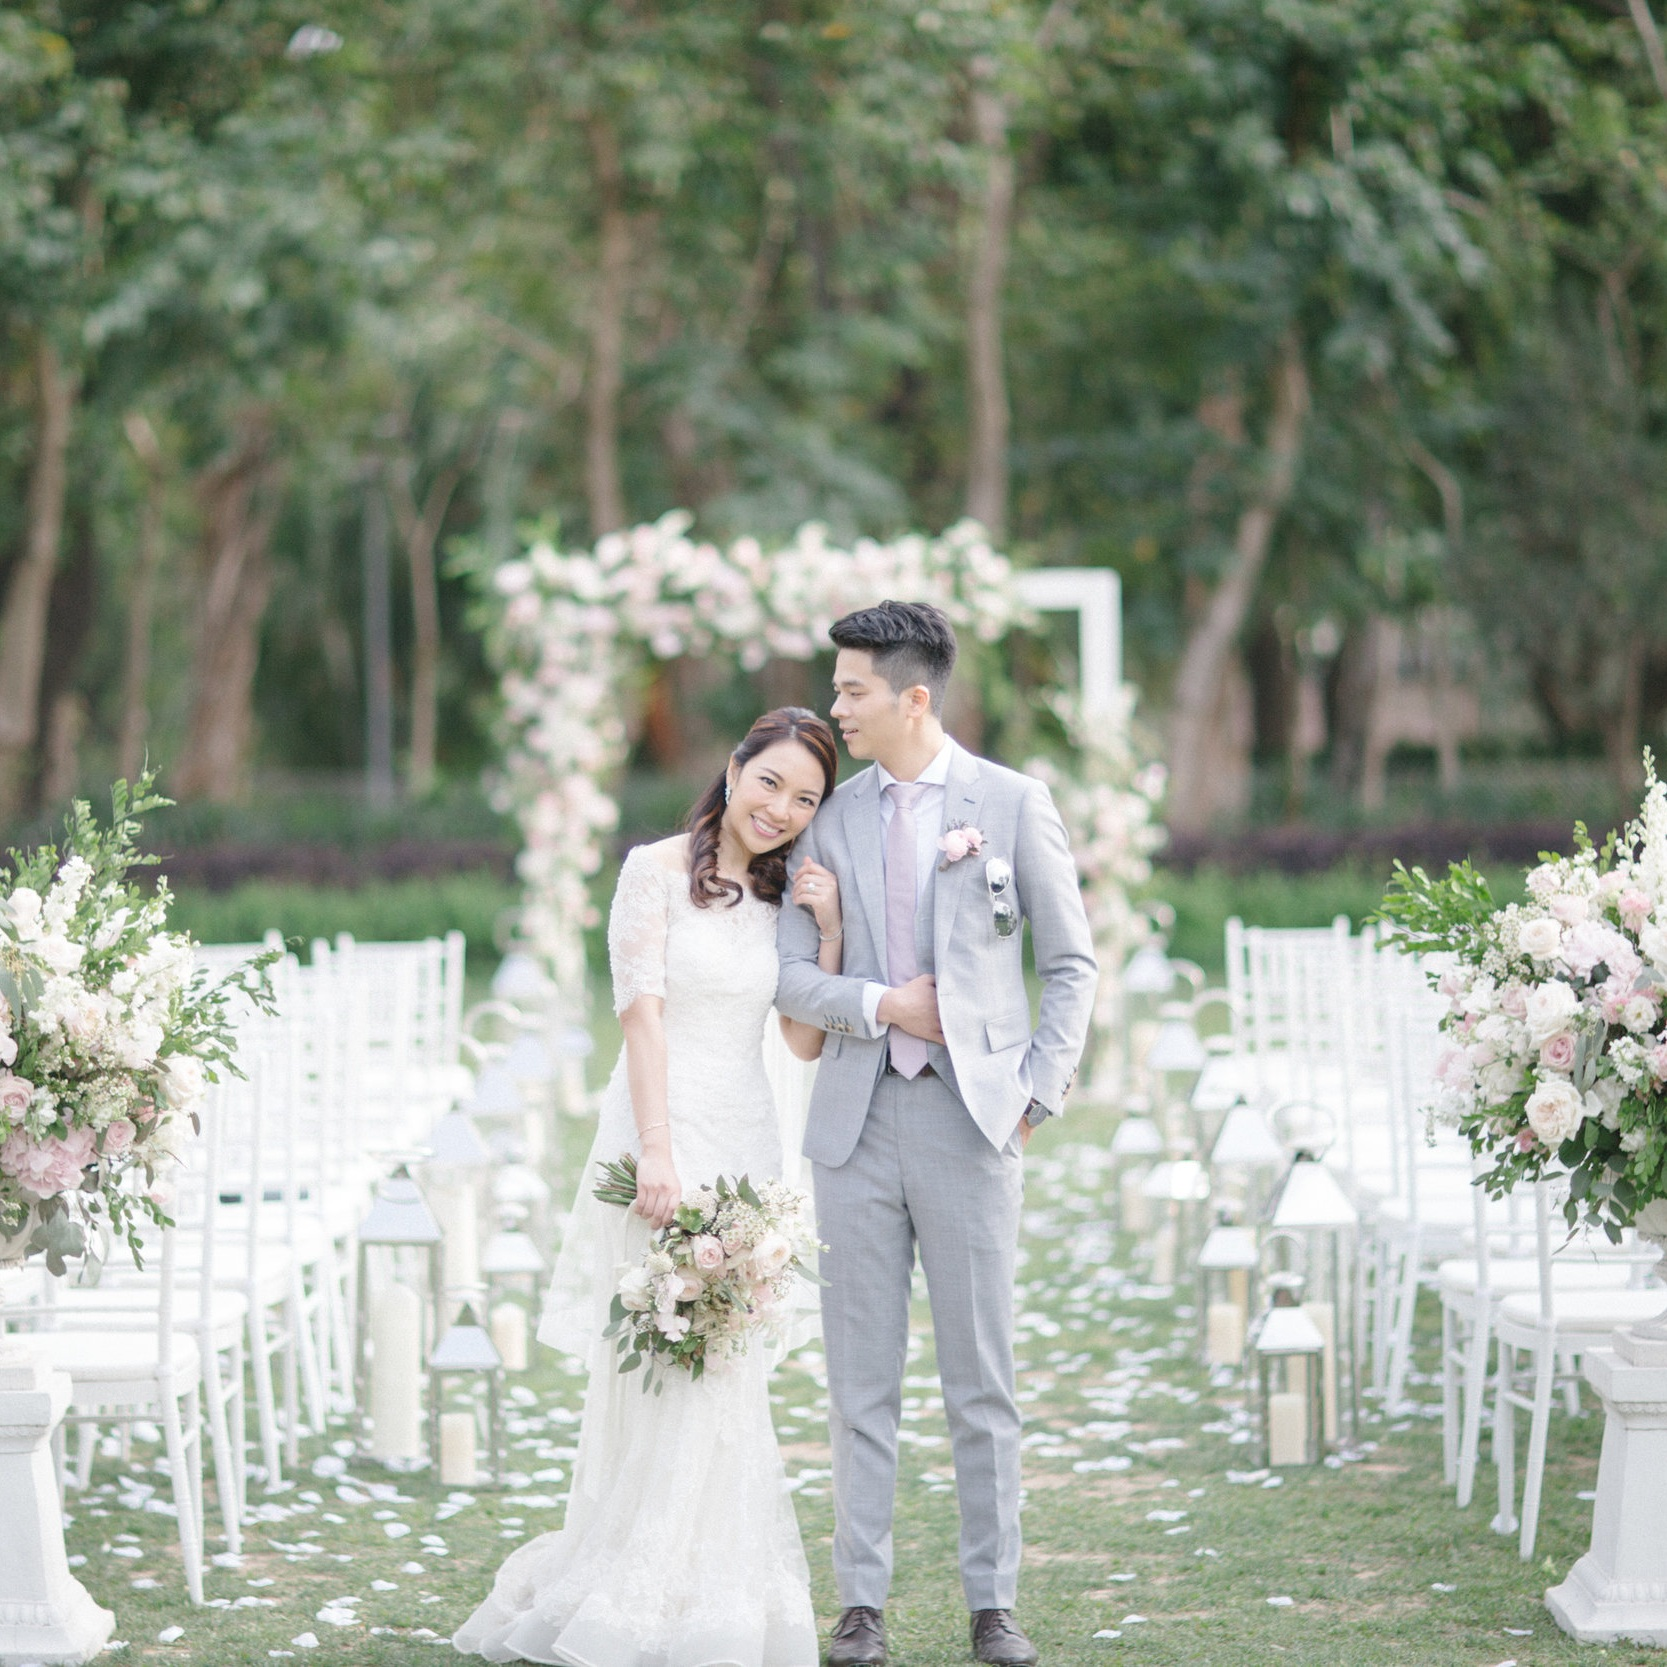 ADA & KELVIN  KOWLOON TSAI PARK BAUHINIA GARDEN  Photography by Mary Ann Art & Photography